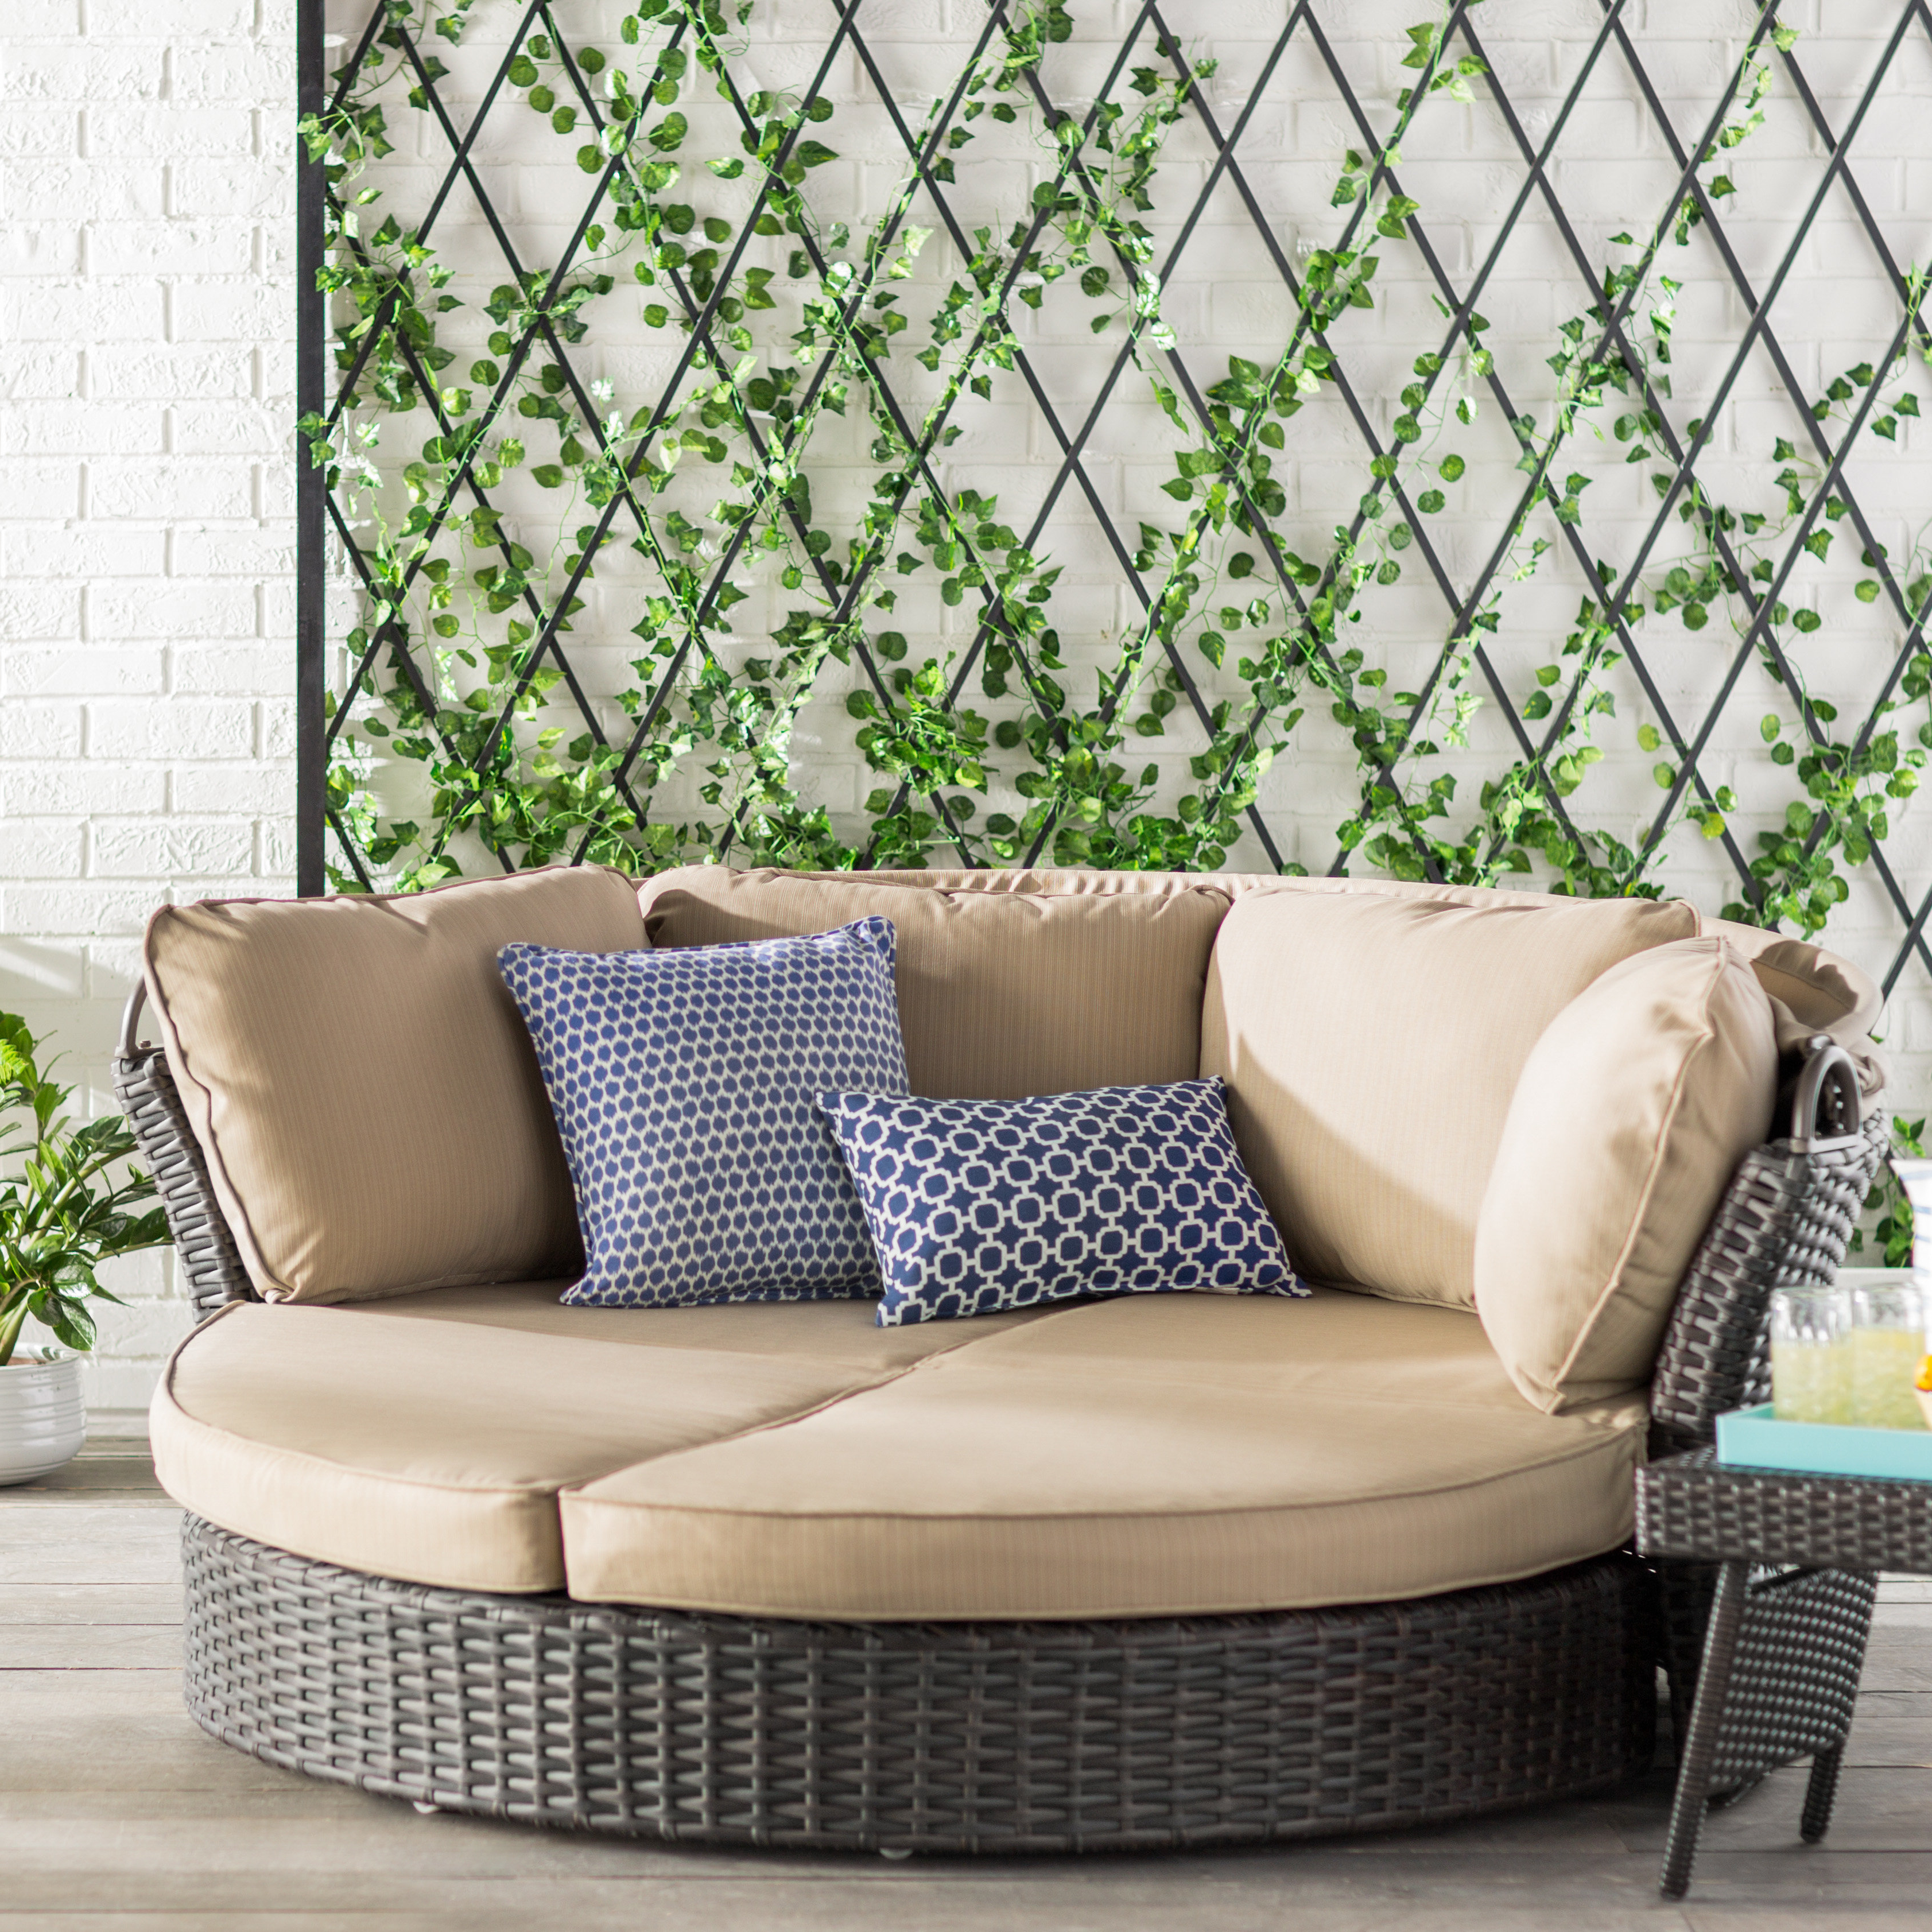 Tiana Patio Daybed With Cushions Inside Popular Harlow Patio Daybeds With Cushions (View 18 of 20)